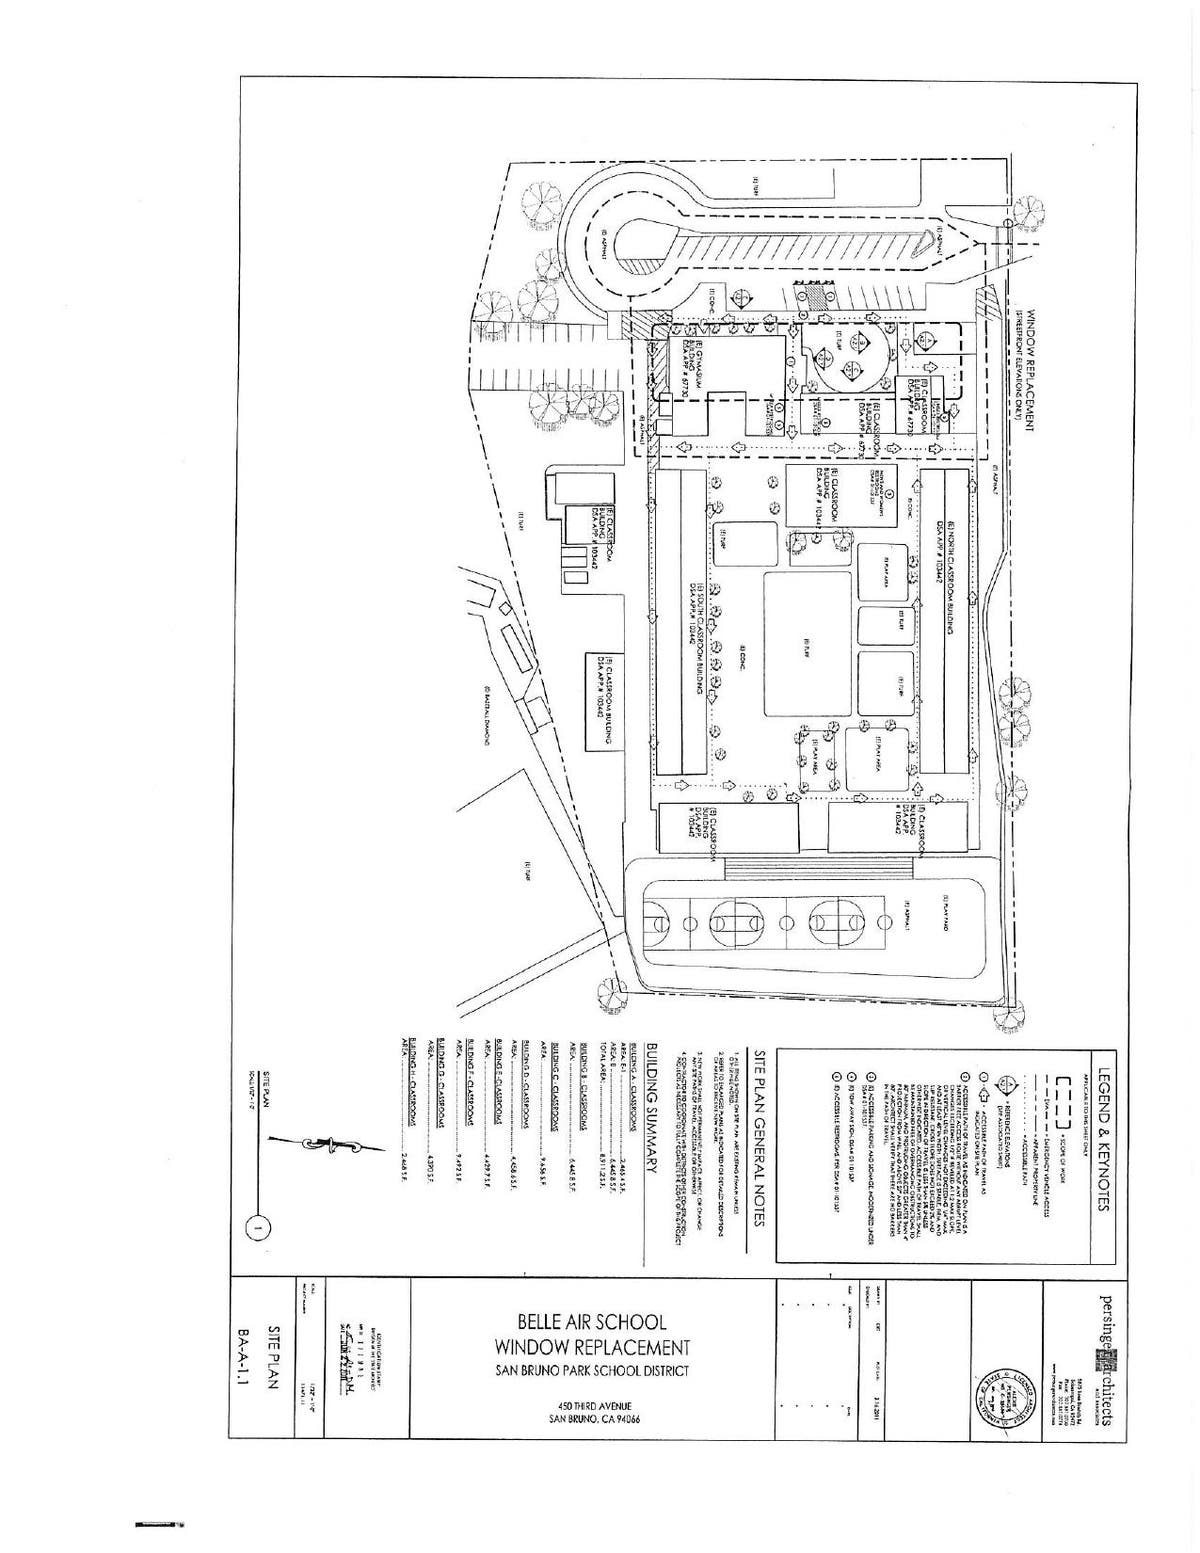 Schematic Diagram 9790 Wiring Library Additional Info About What Each School Site Could Continue To Offer Going Forward